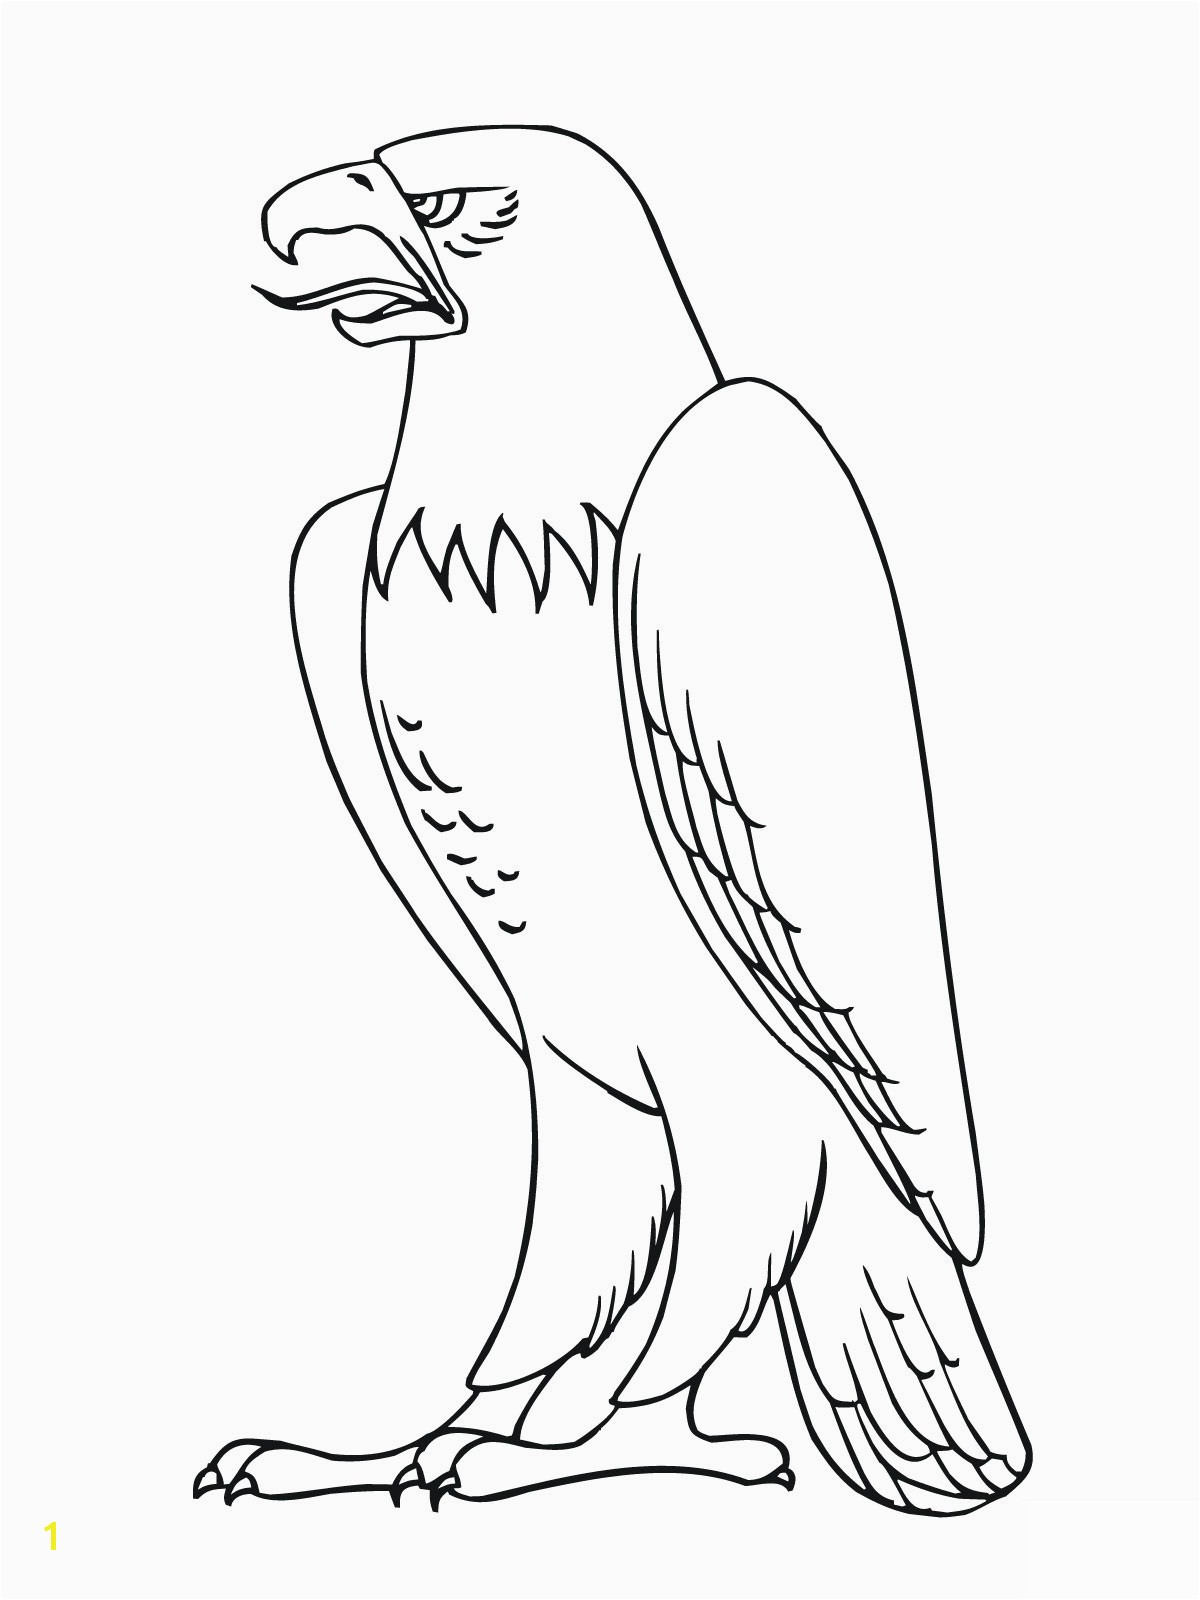 Printable Bird Coloring Pages Beautiful Free Bird Coloring Pages Awesome Best Od Dog Coloring Pages Free